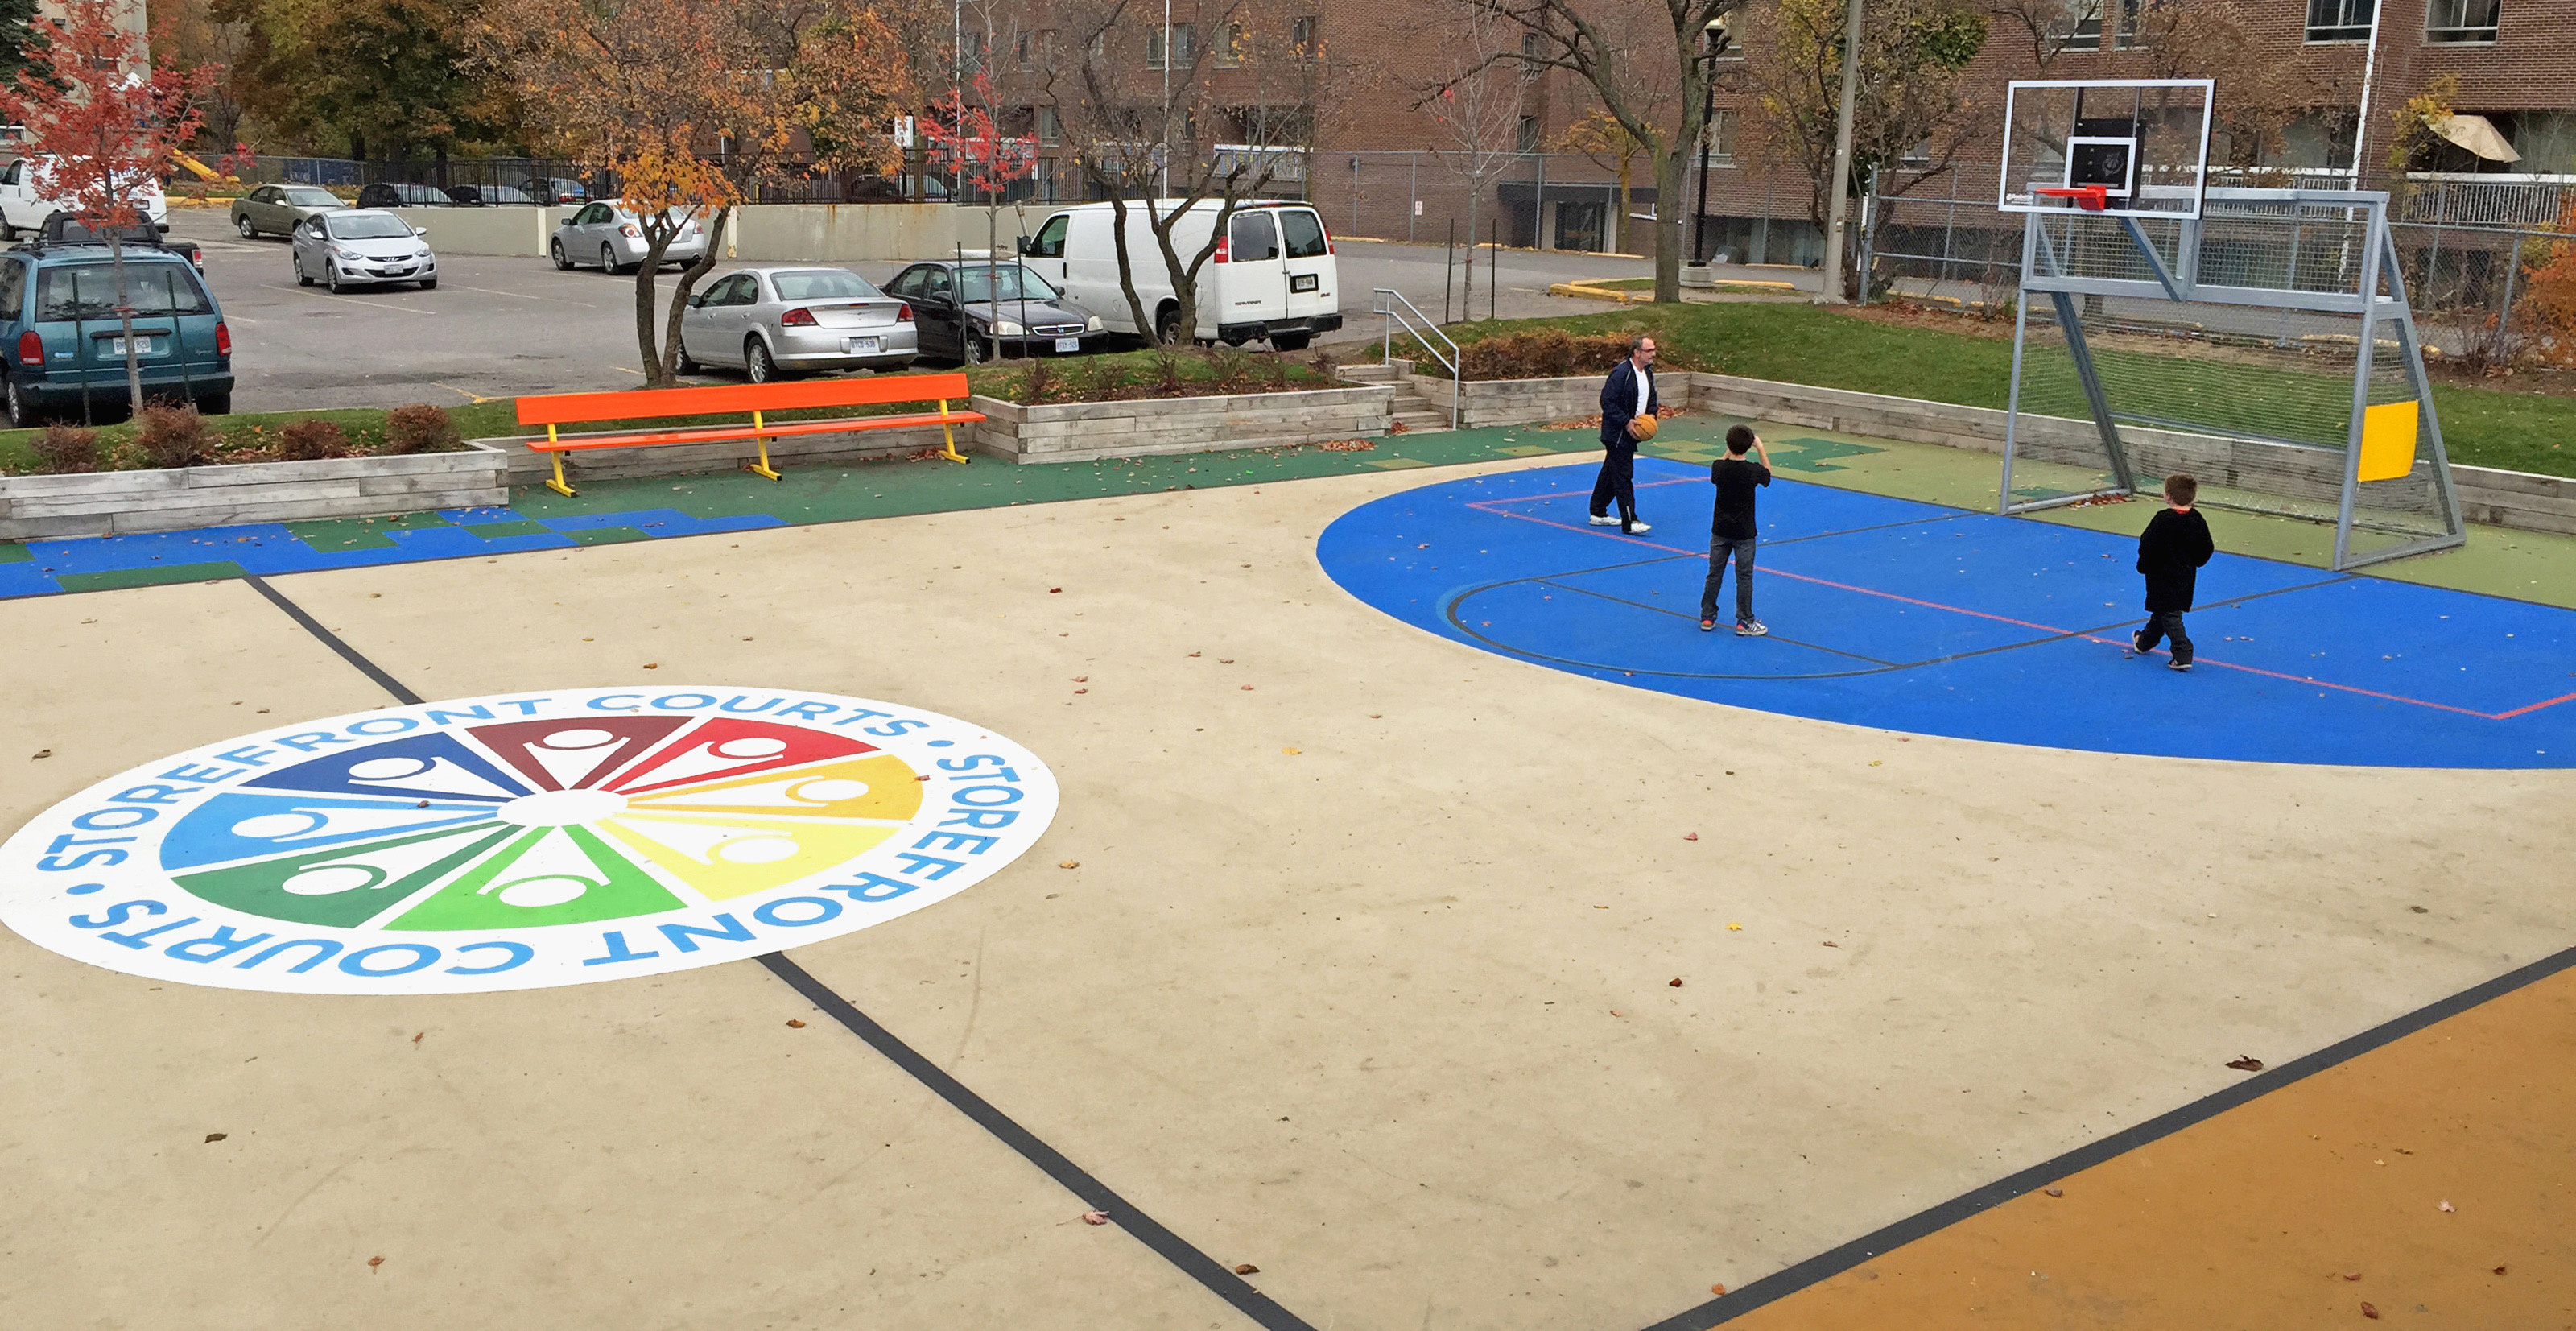 Court side view of 2 children and an adult playing basketball on the Storefront Courts.